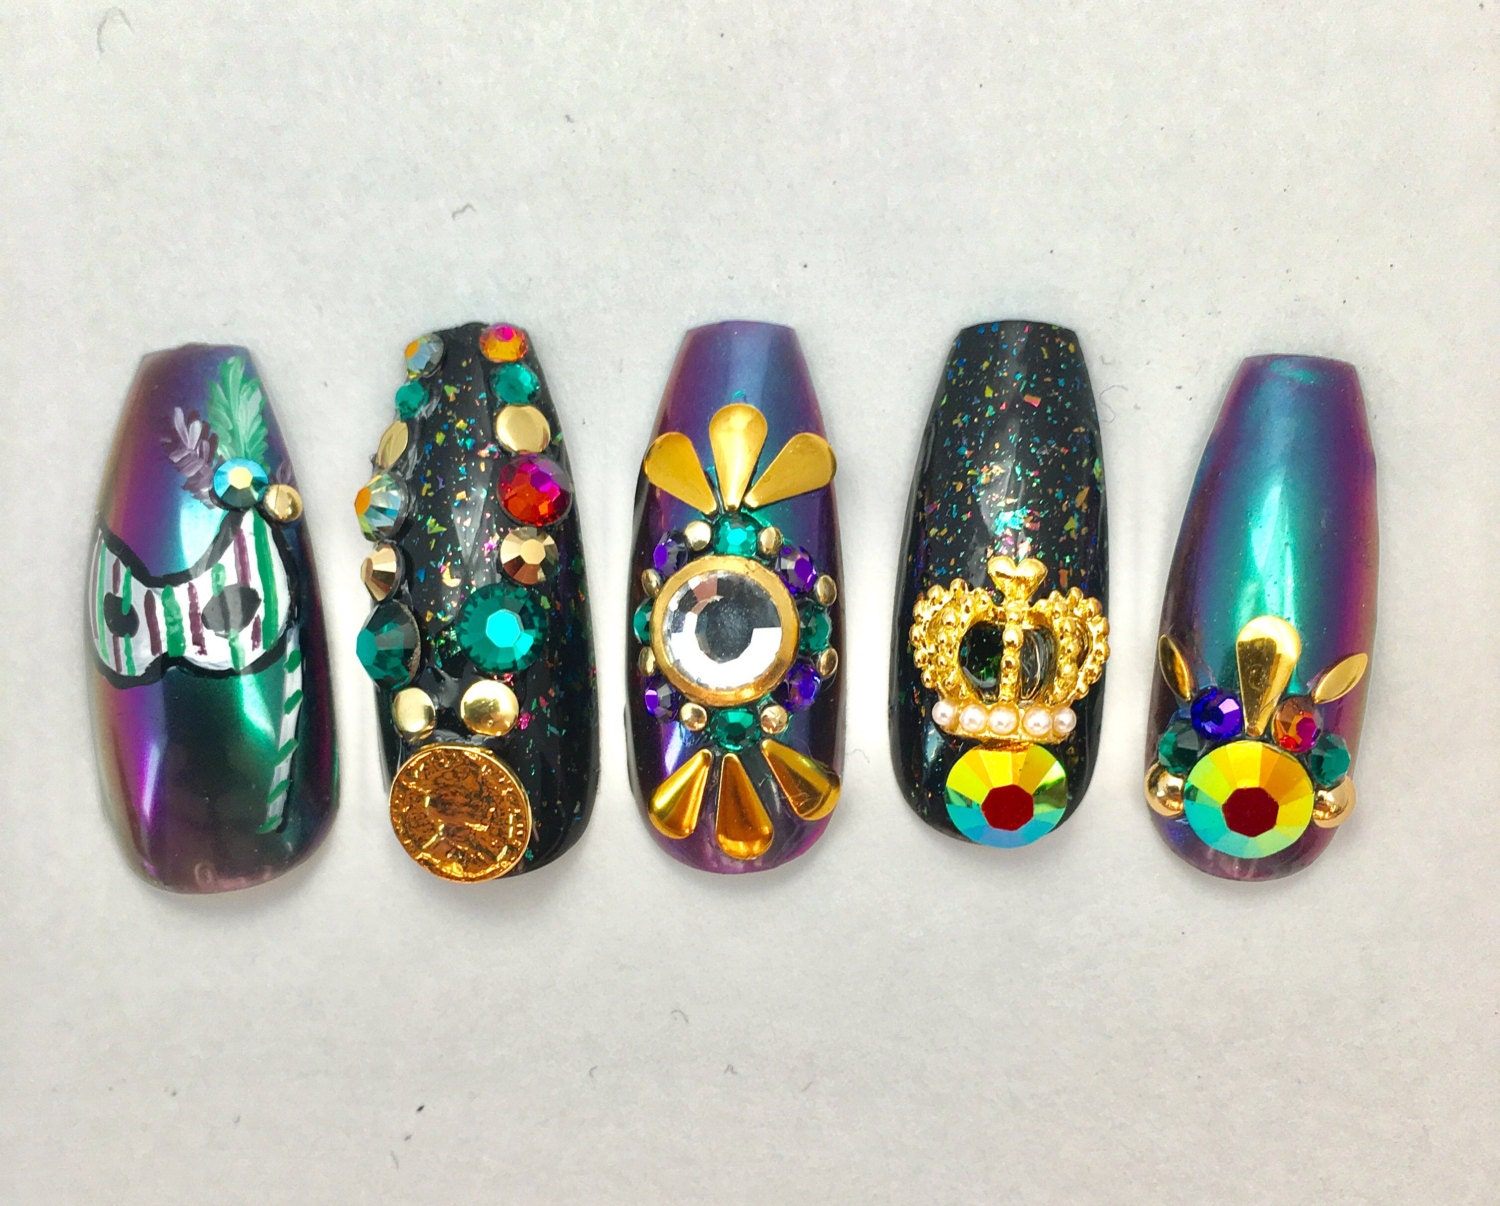 Mardi gras coffin fake nails extra long fake nails press on mardi gras coffin fake nails extra long fake nails press on nails new orleans nail art duochrome nails 3d japanese nail art for party prinsesfo Choice Image